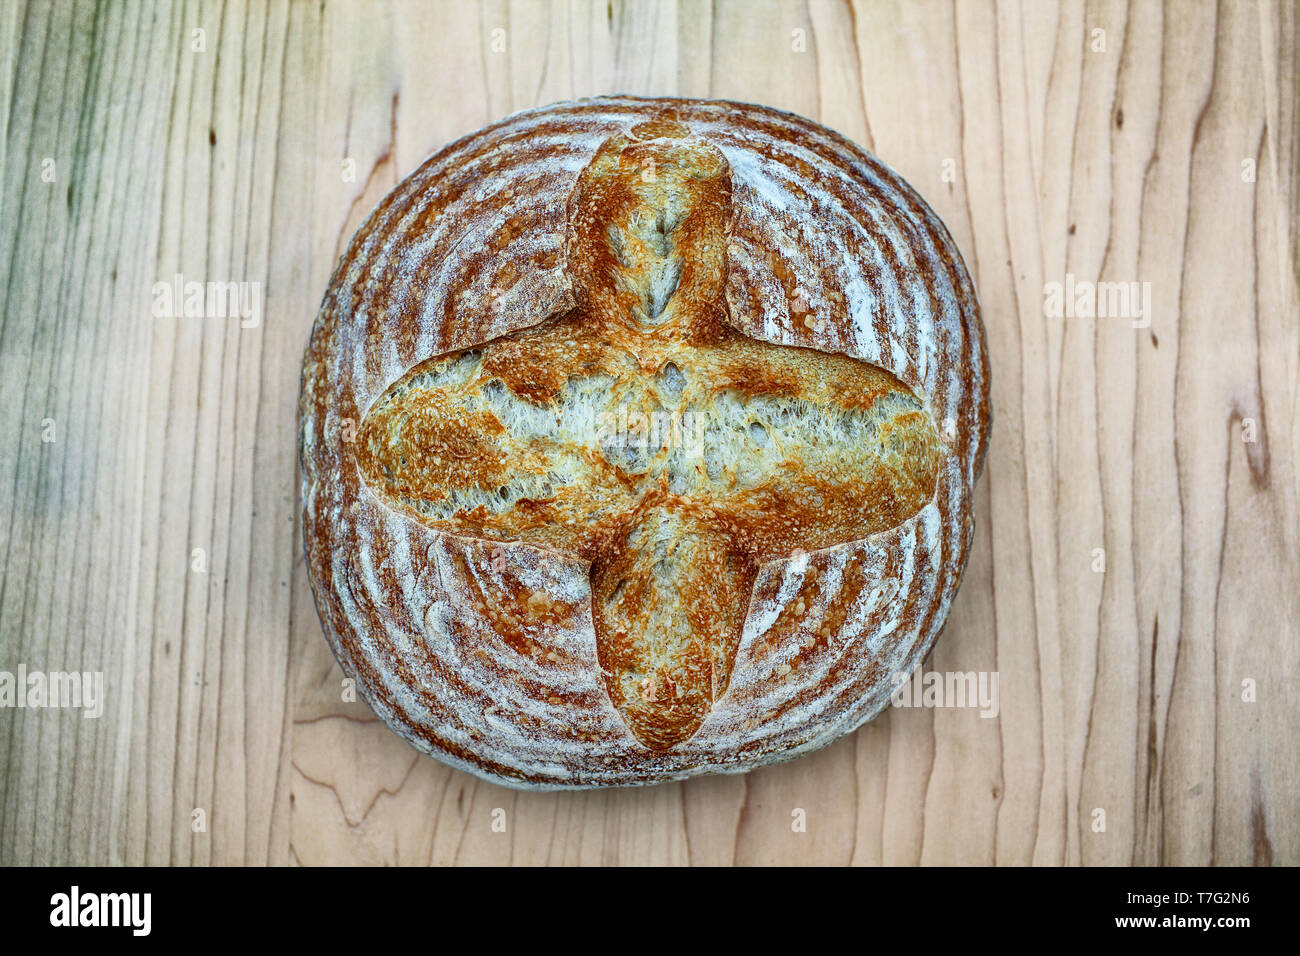 Artisan crusty loaf of freshly baked sourdough bread focaccia boule. traditional Homemade sourdough Boule bread with crust on a wooden board Stock Photo